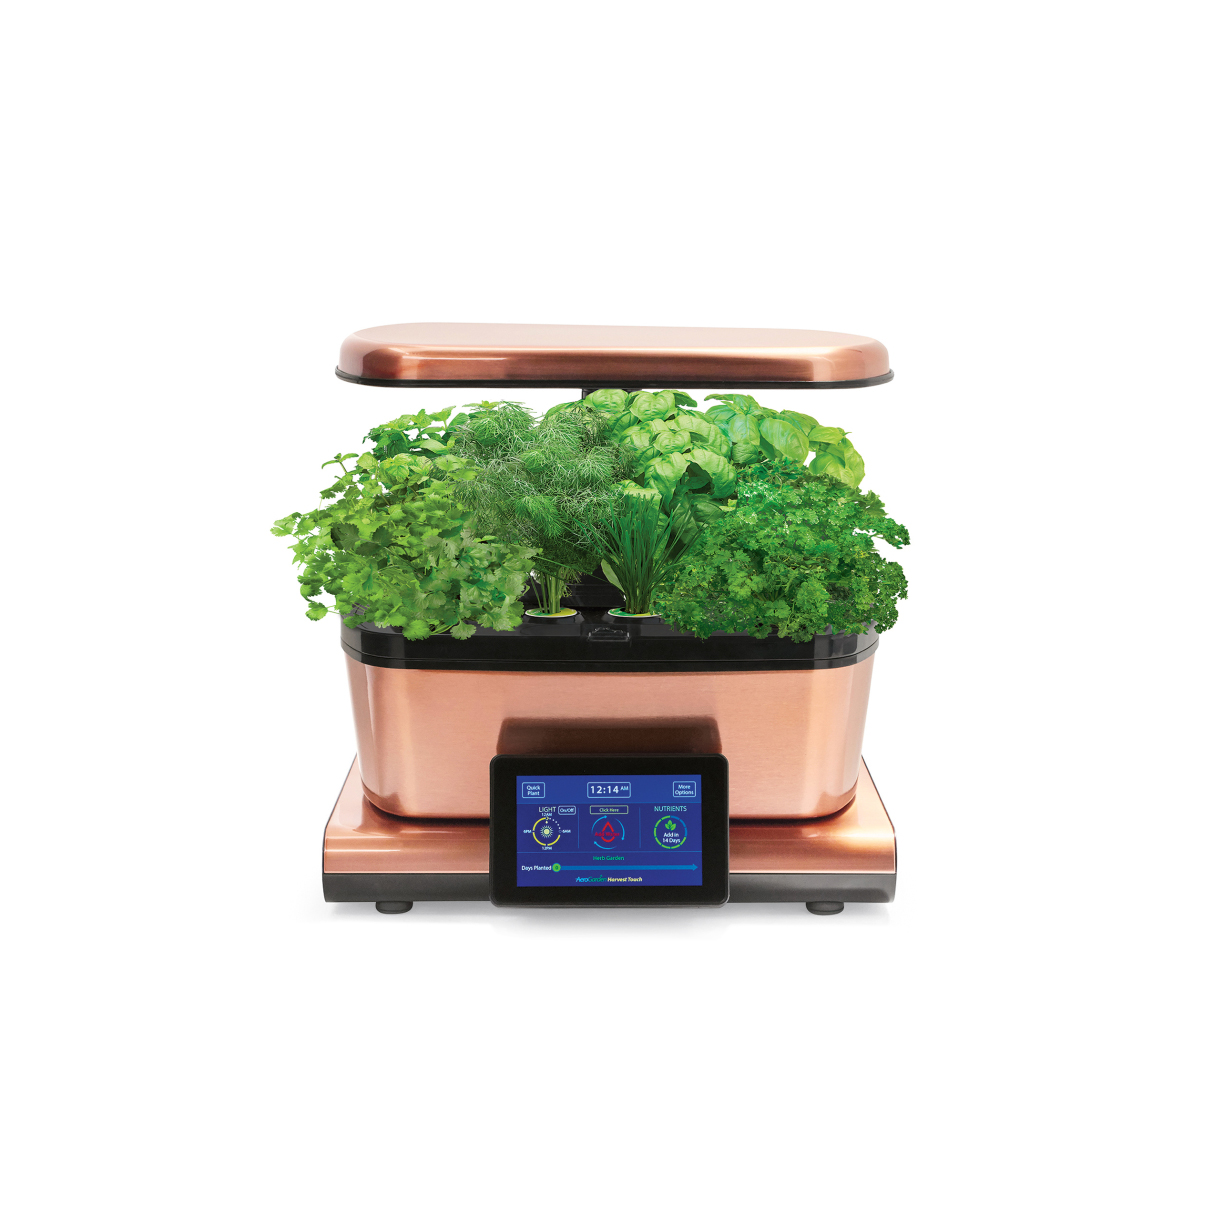 AeroGarden Harvest Touch with Gourmet Herbs Seed Pod Kit